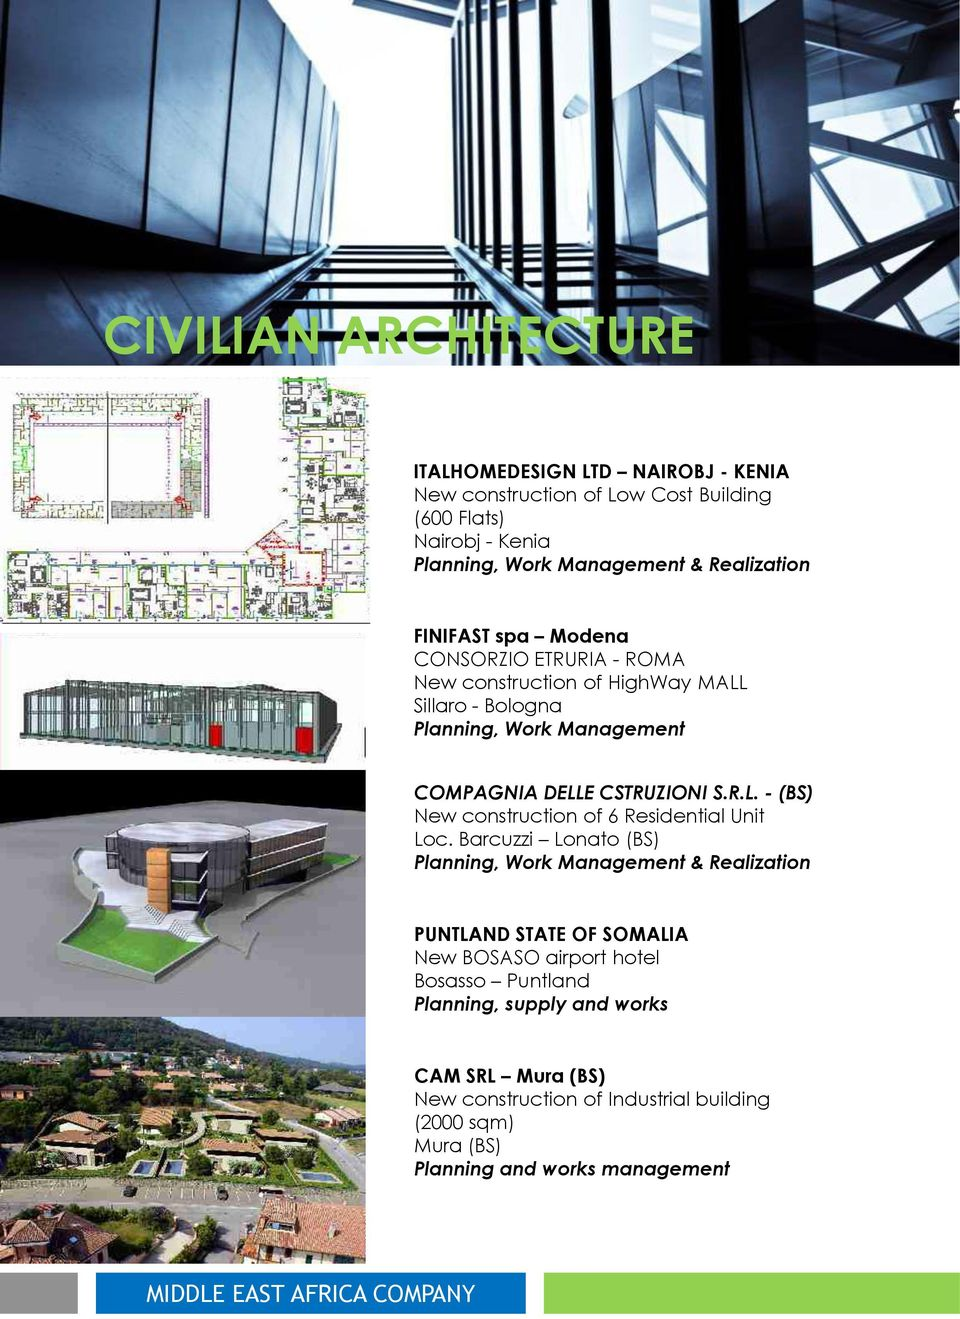 CSTRUZIONI S.R.L. - (BS) New construction of 6 Residential Unit Loc.